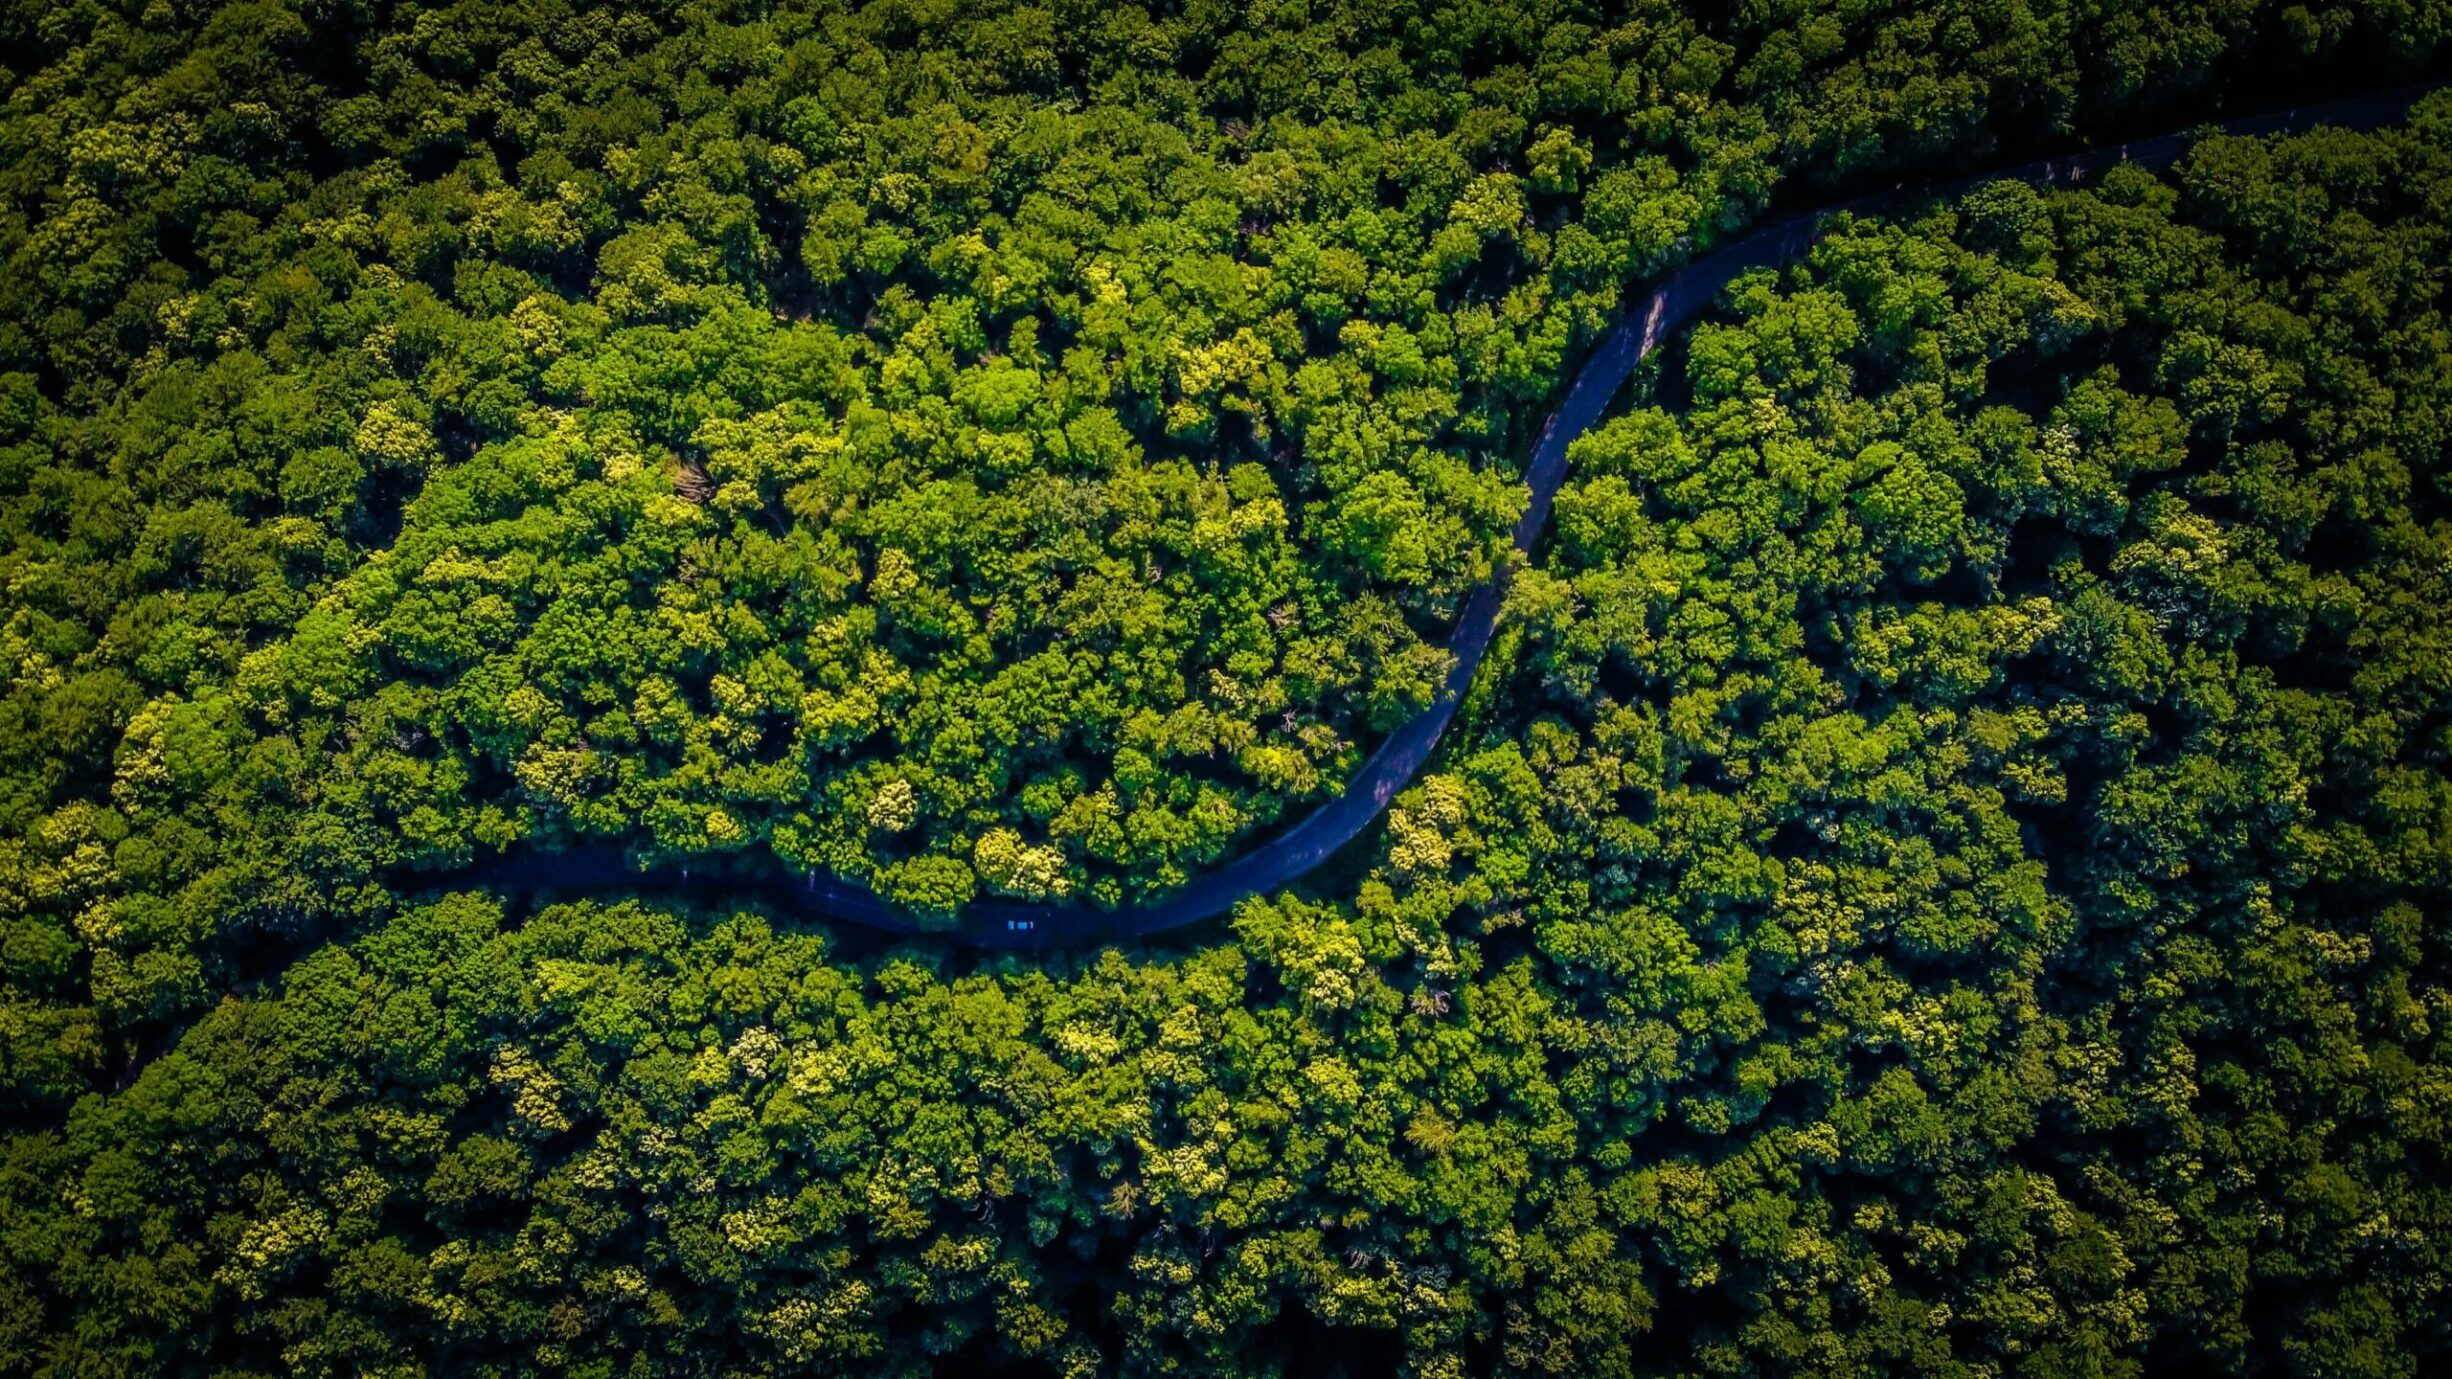 overhead photo of trees in rainforest